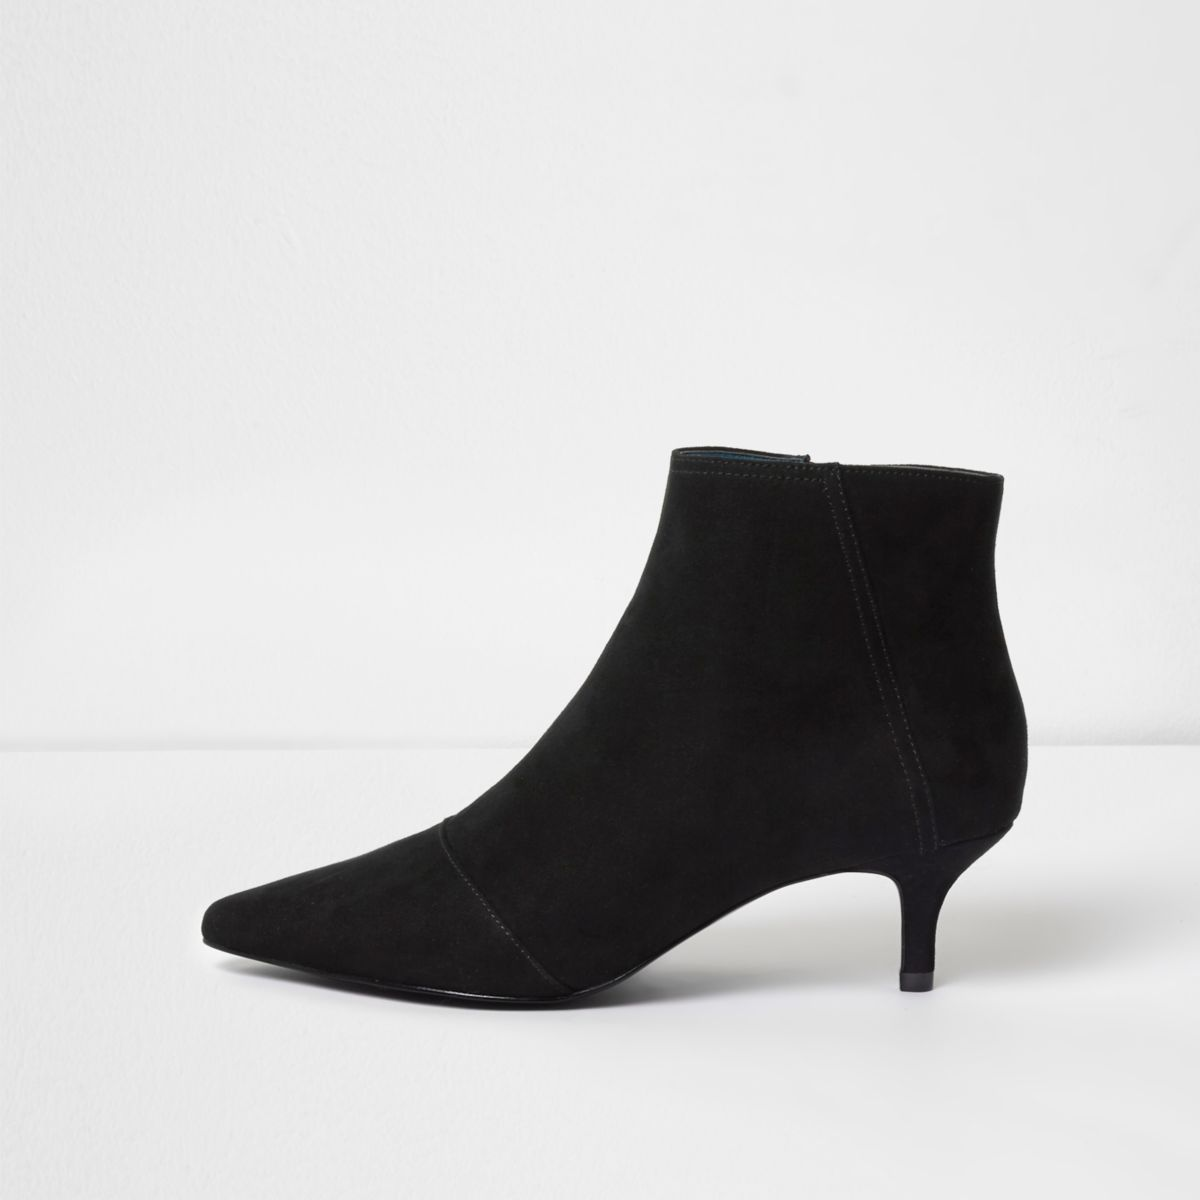 Black pointed kitten heel boots - Gifts - Sale - women